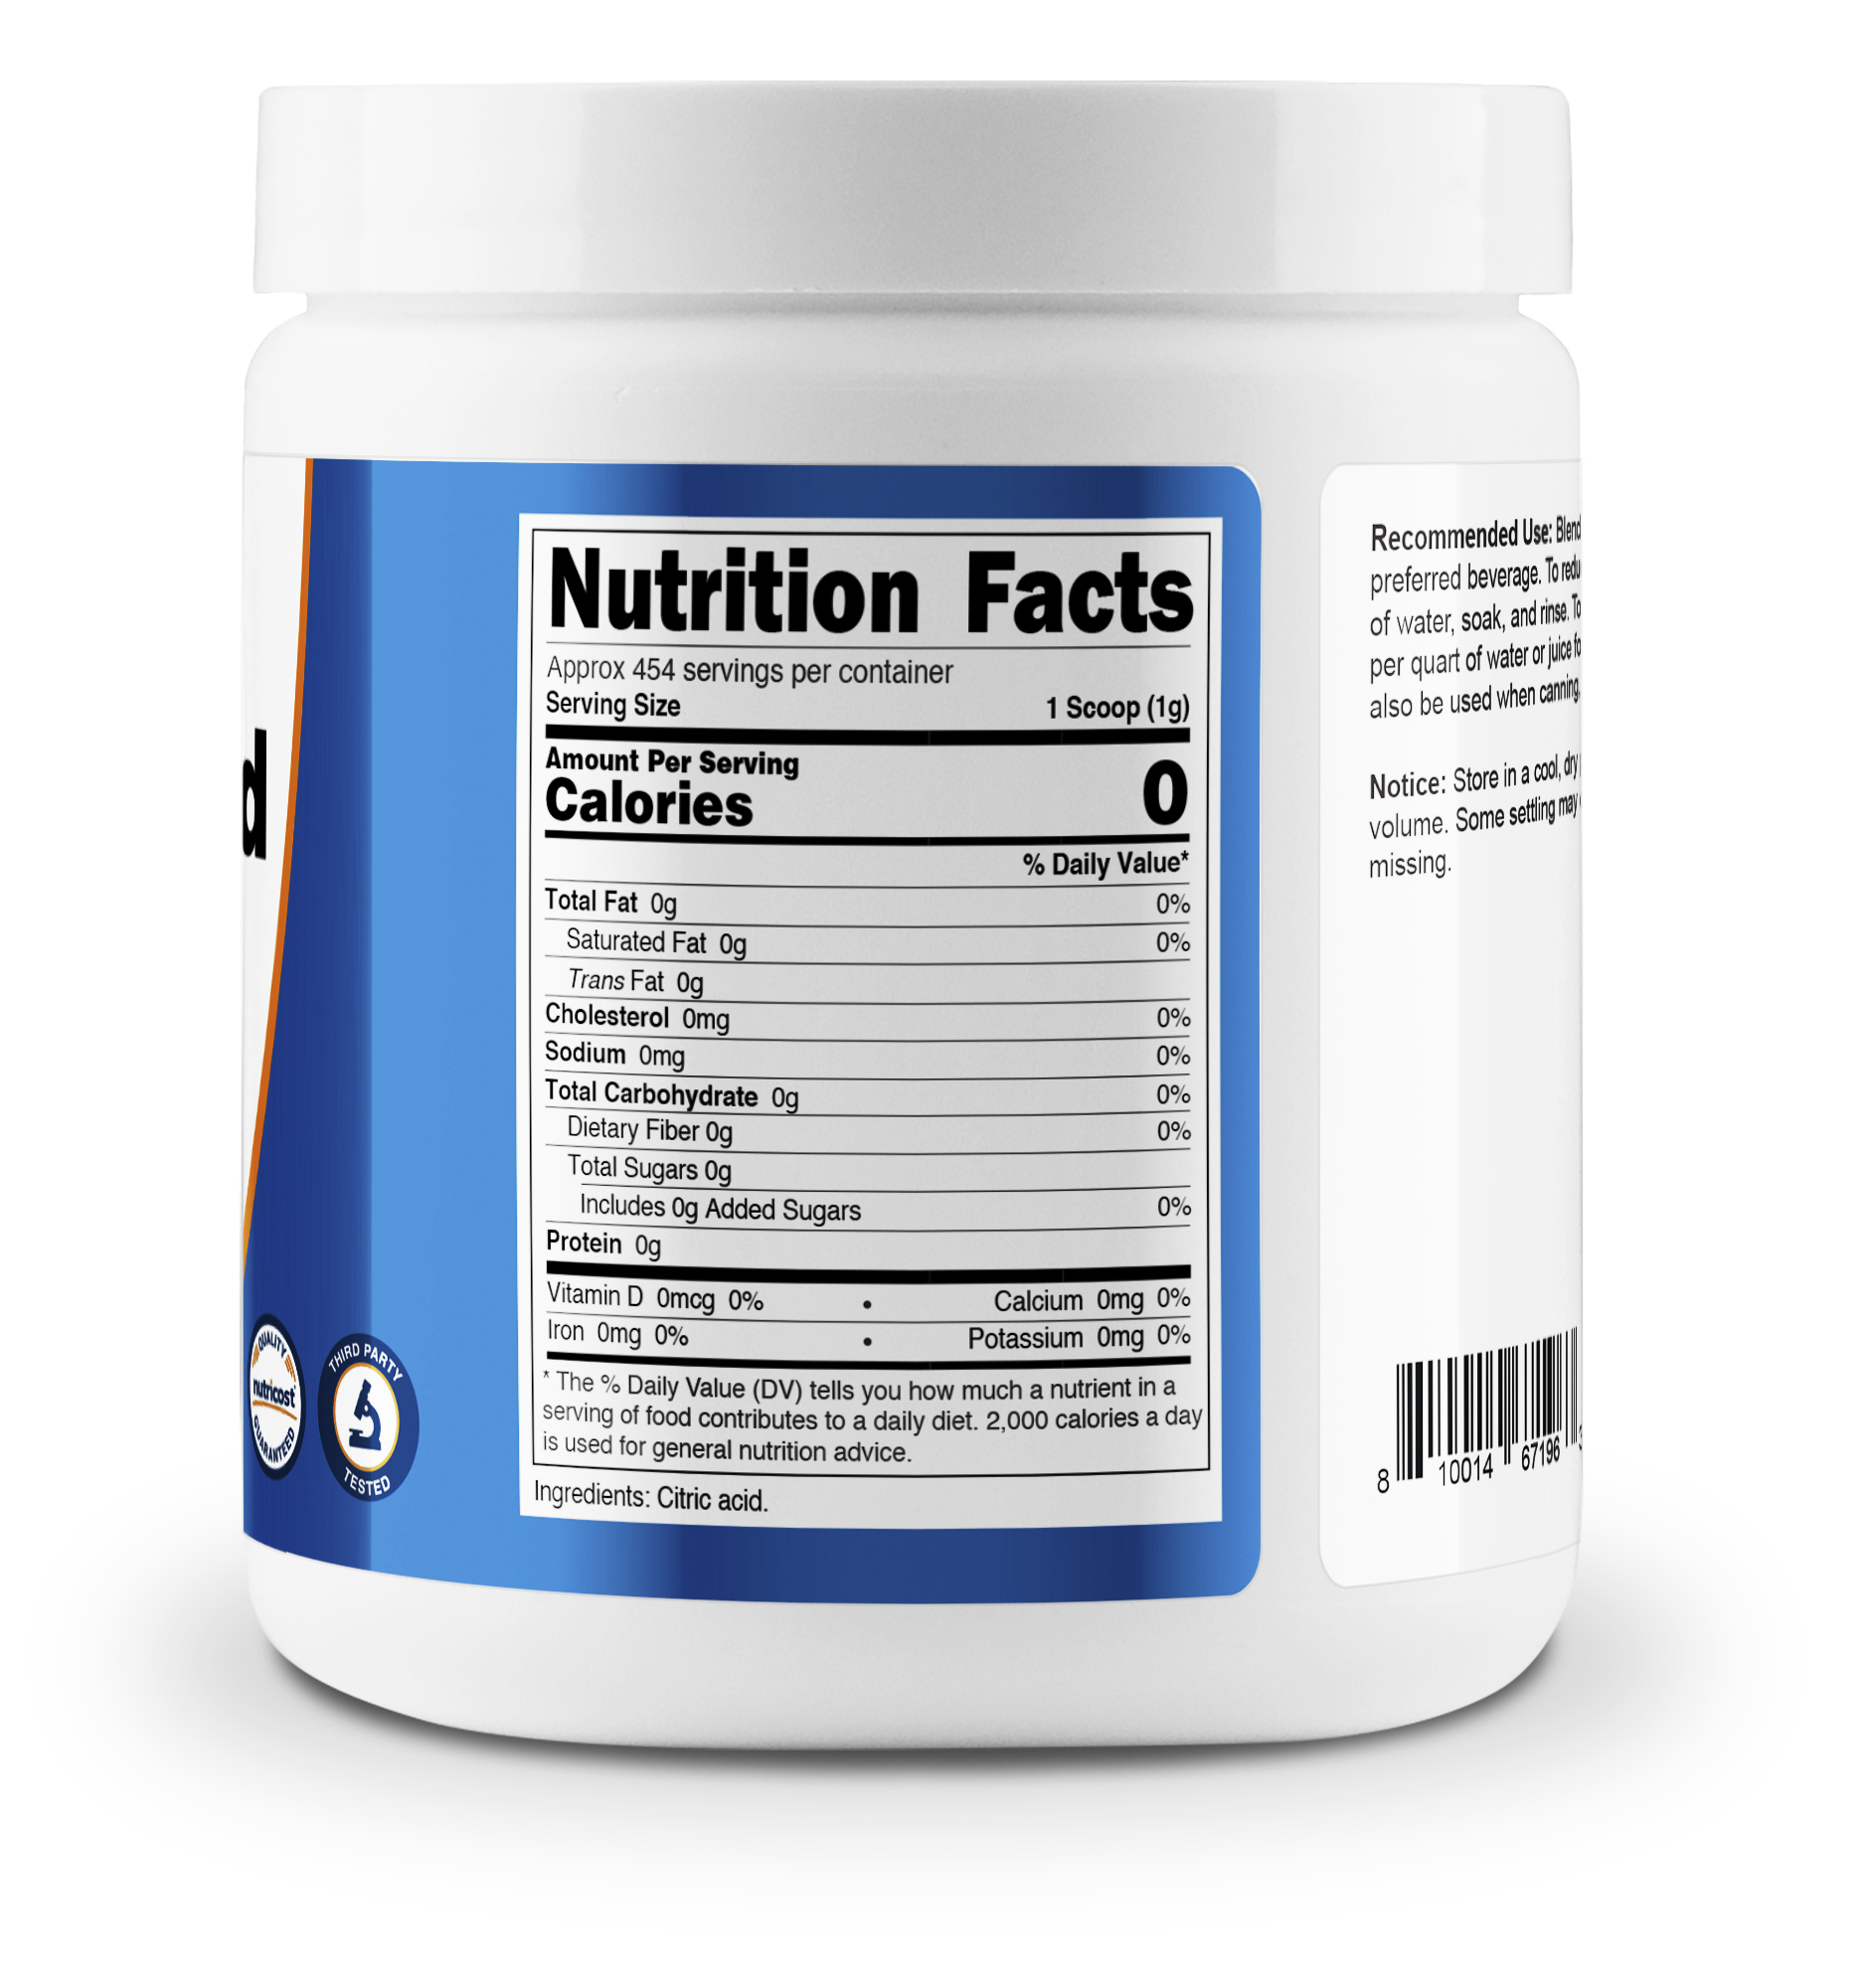 Nutricost Citric Acid Supplement Facts